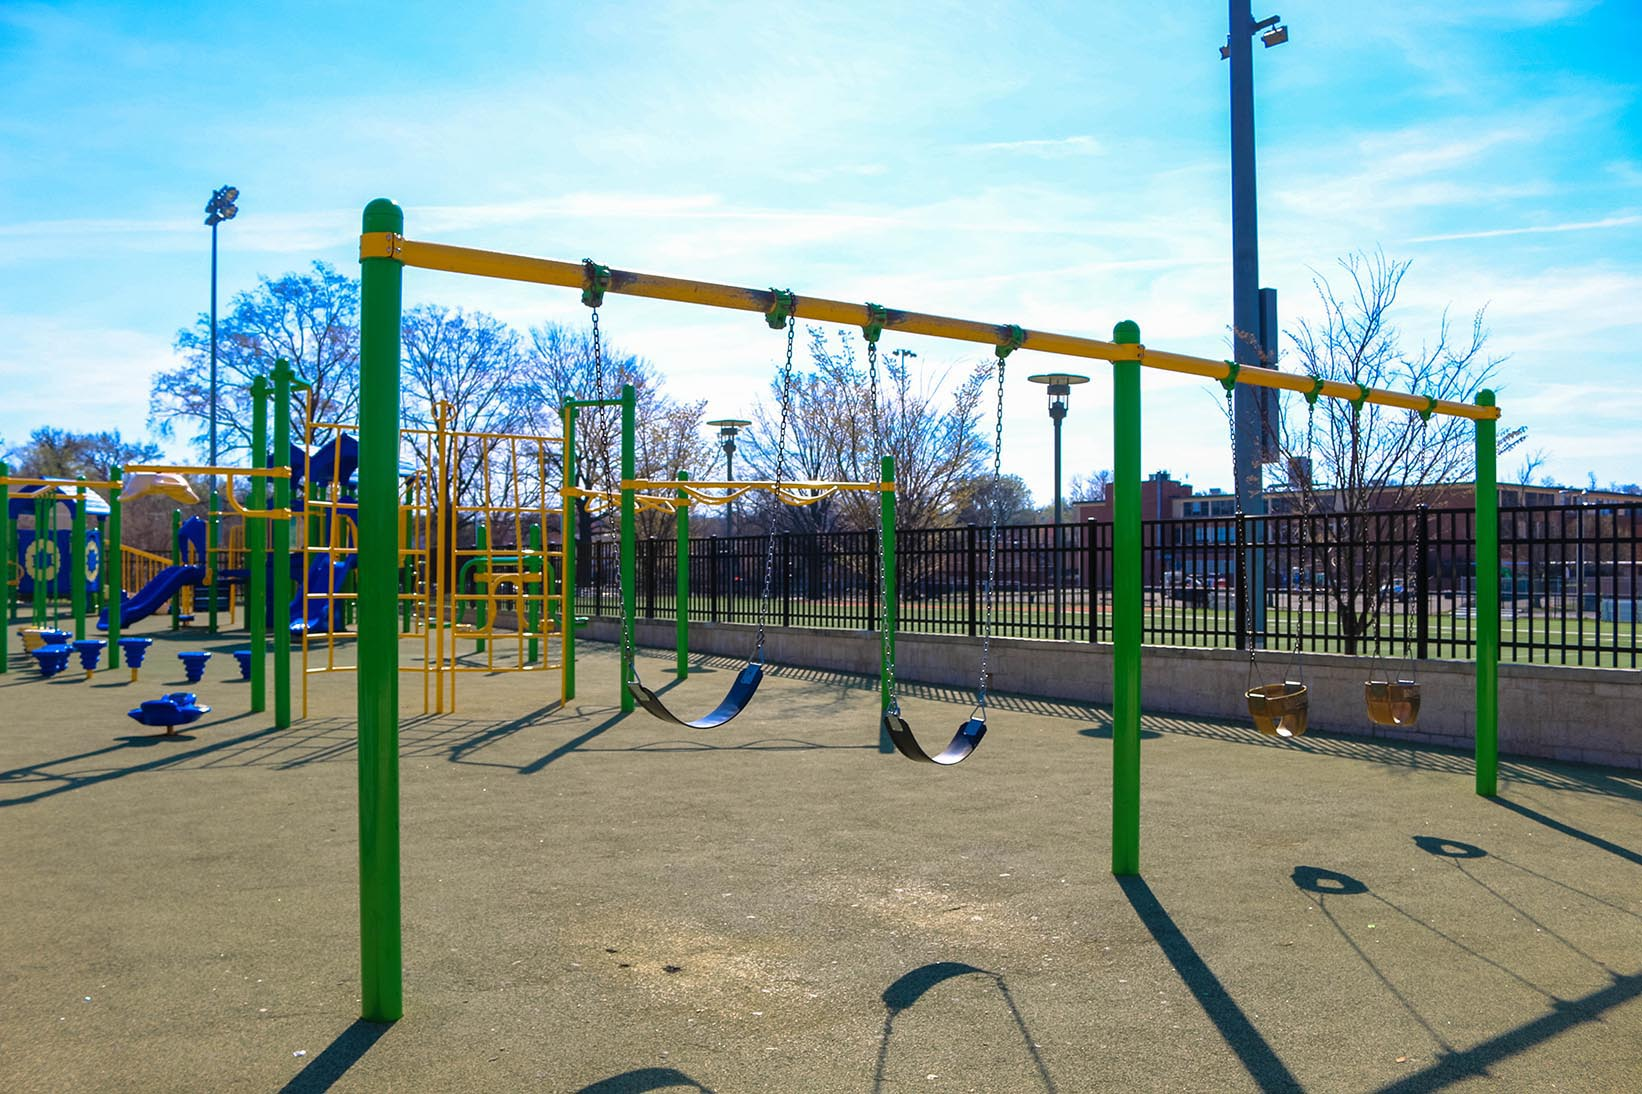 Community center playground in Deanwood, Washington, D.C.